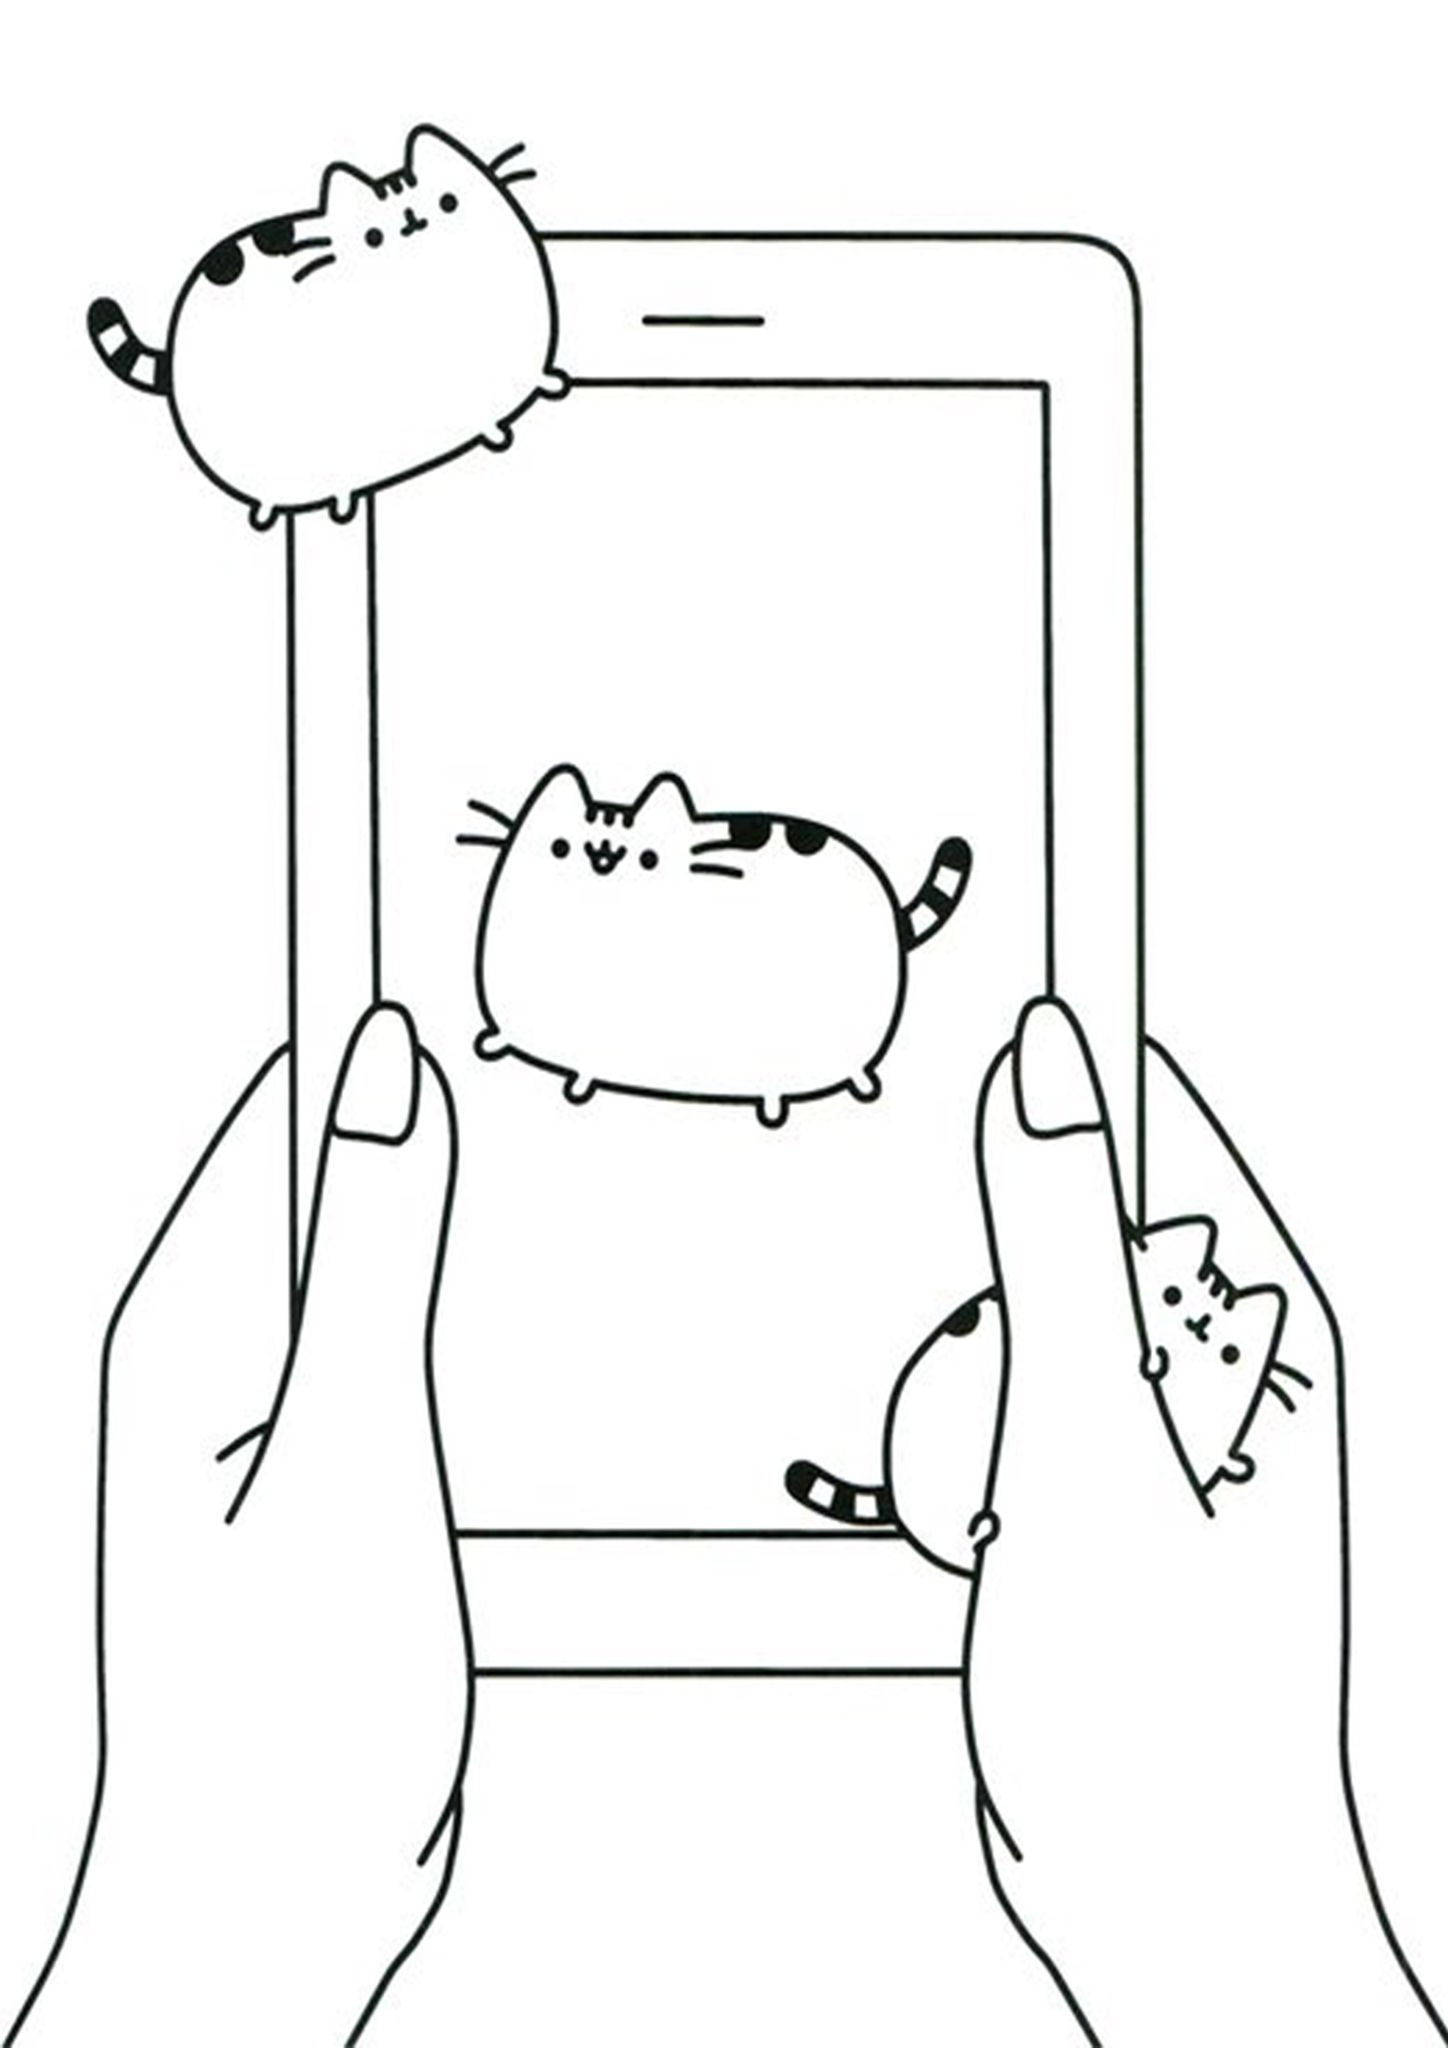 Free Easy To Print Pusheen Coloring Pages Pusheen Coloring Pages Coloring Pages Pusheen